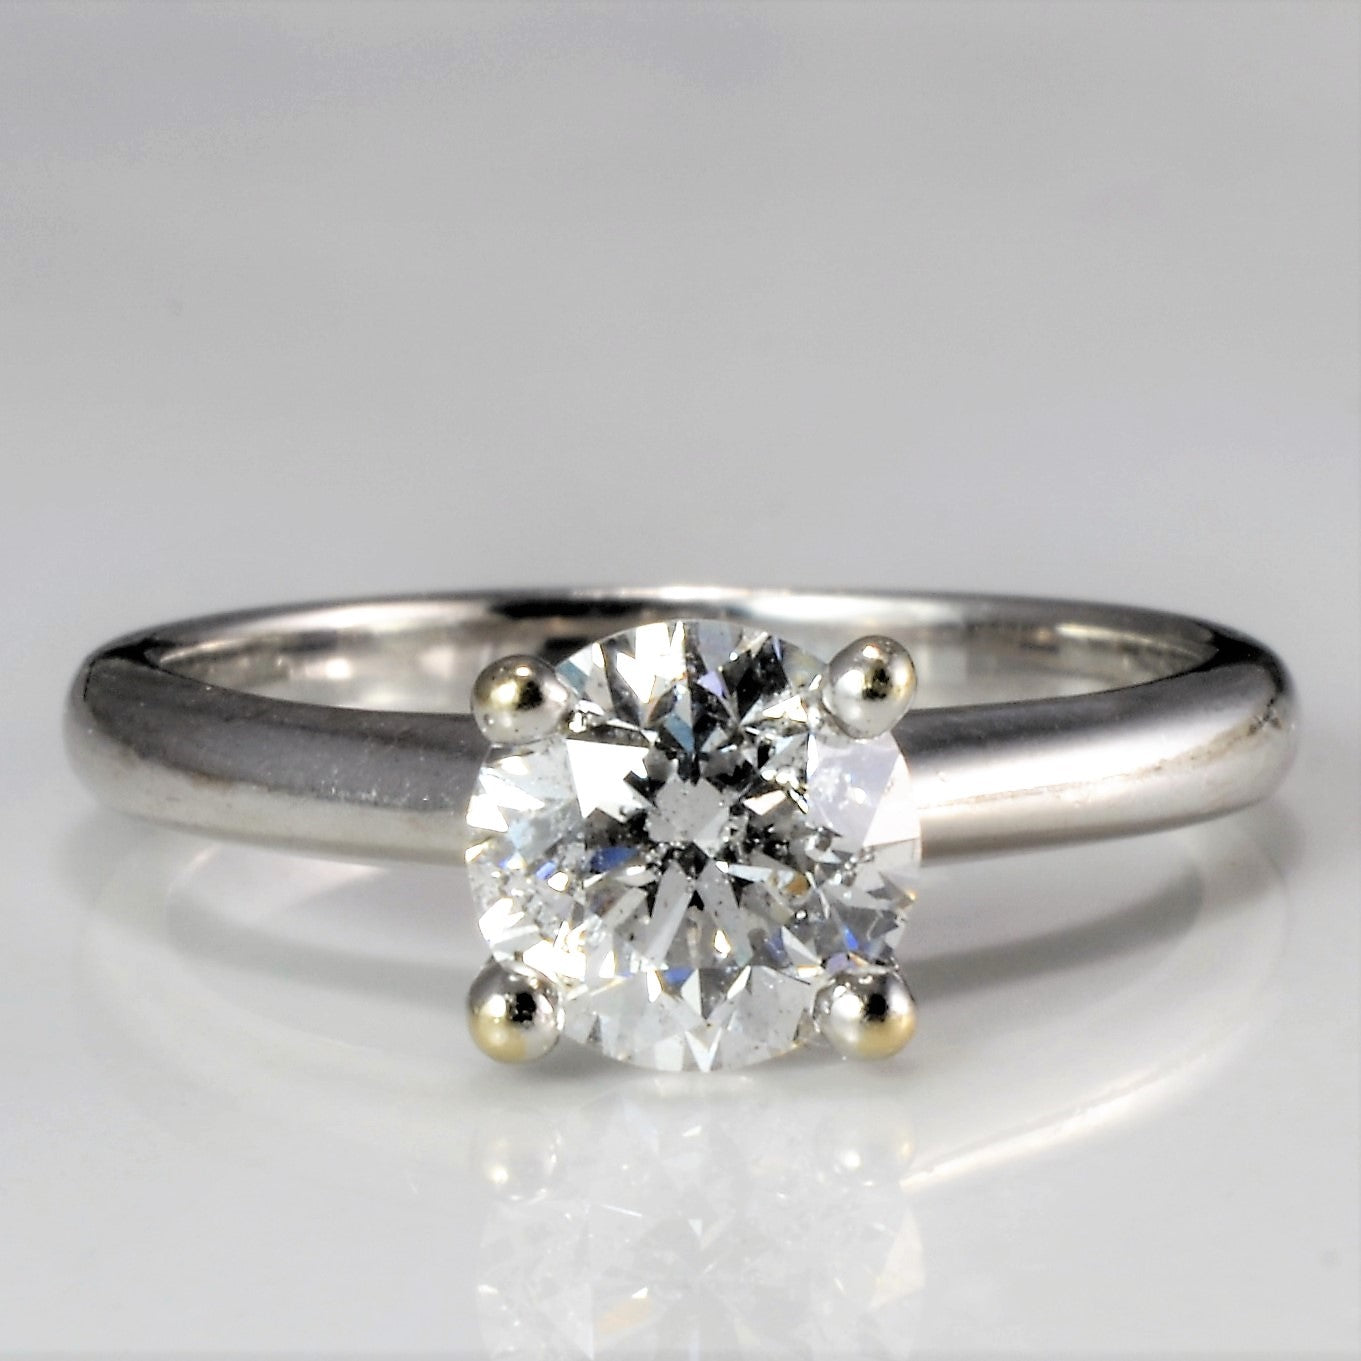 Solitaire Diamond Engagement Ring | 0.89 ct, SZ 5 |